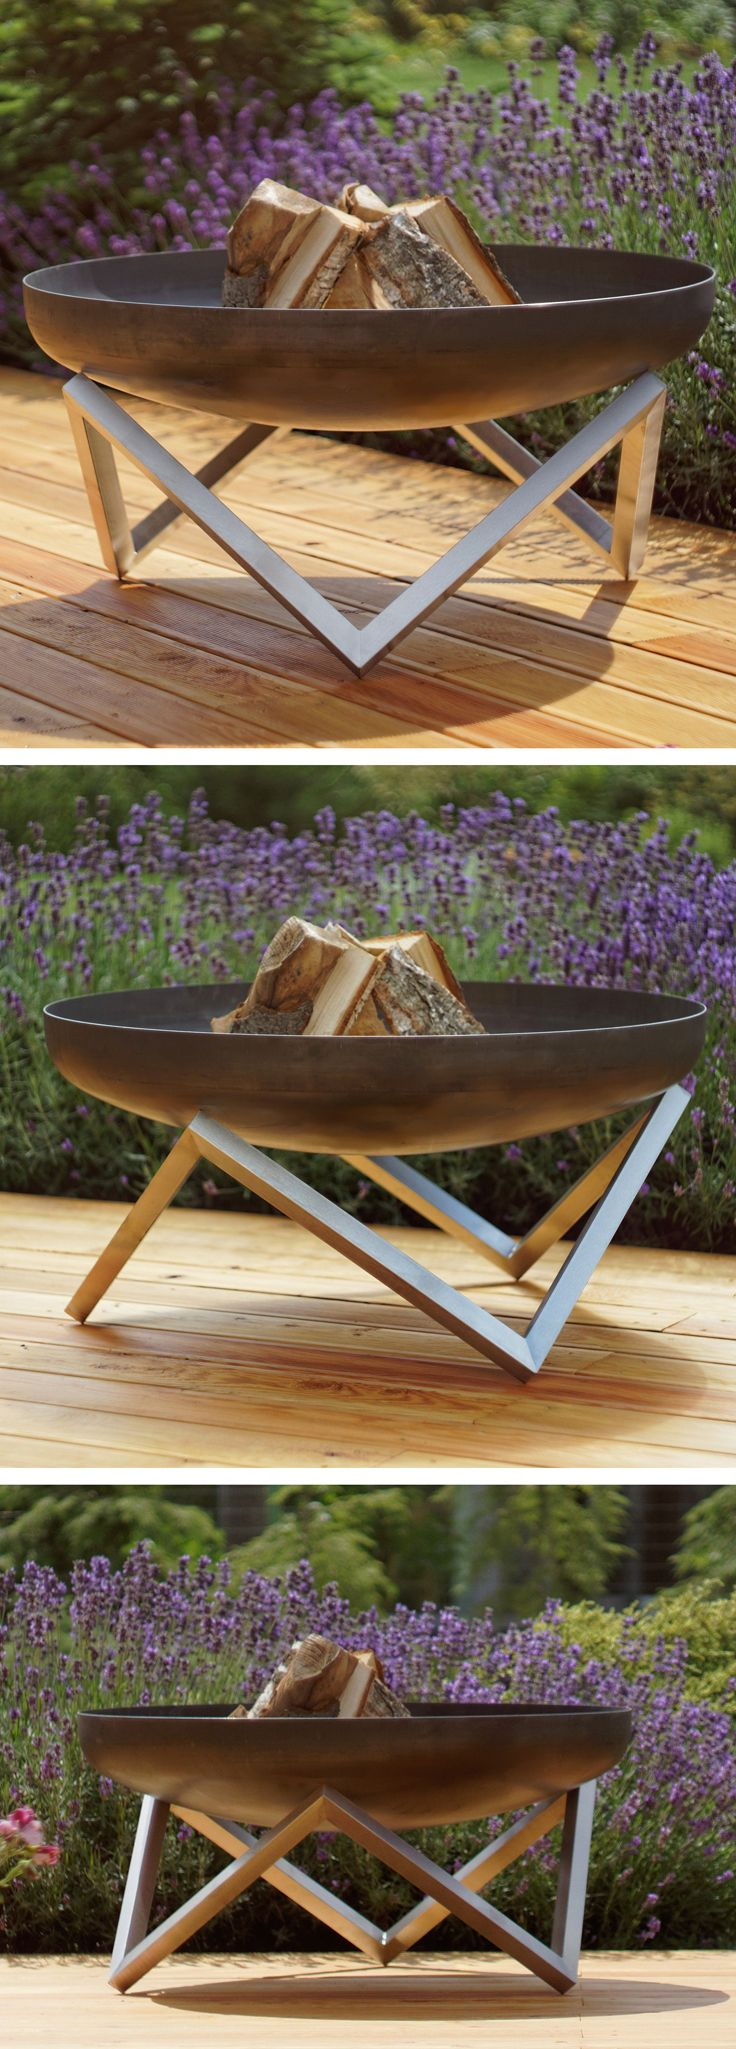 The Memel Fire Pit by Curonian Deco   Modern and unique Fire Pits  Planters  and. Best 25  Contemporary garden furniture ideas on Pinterest